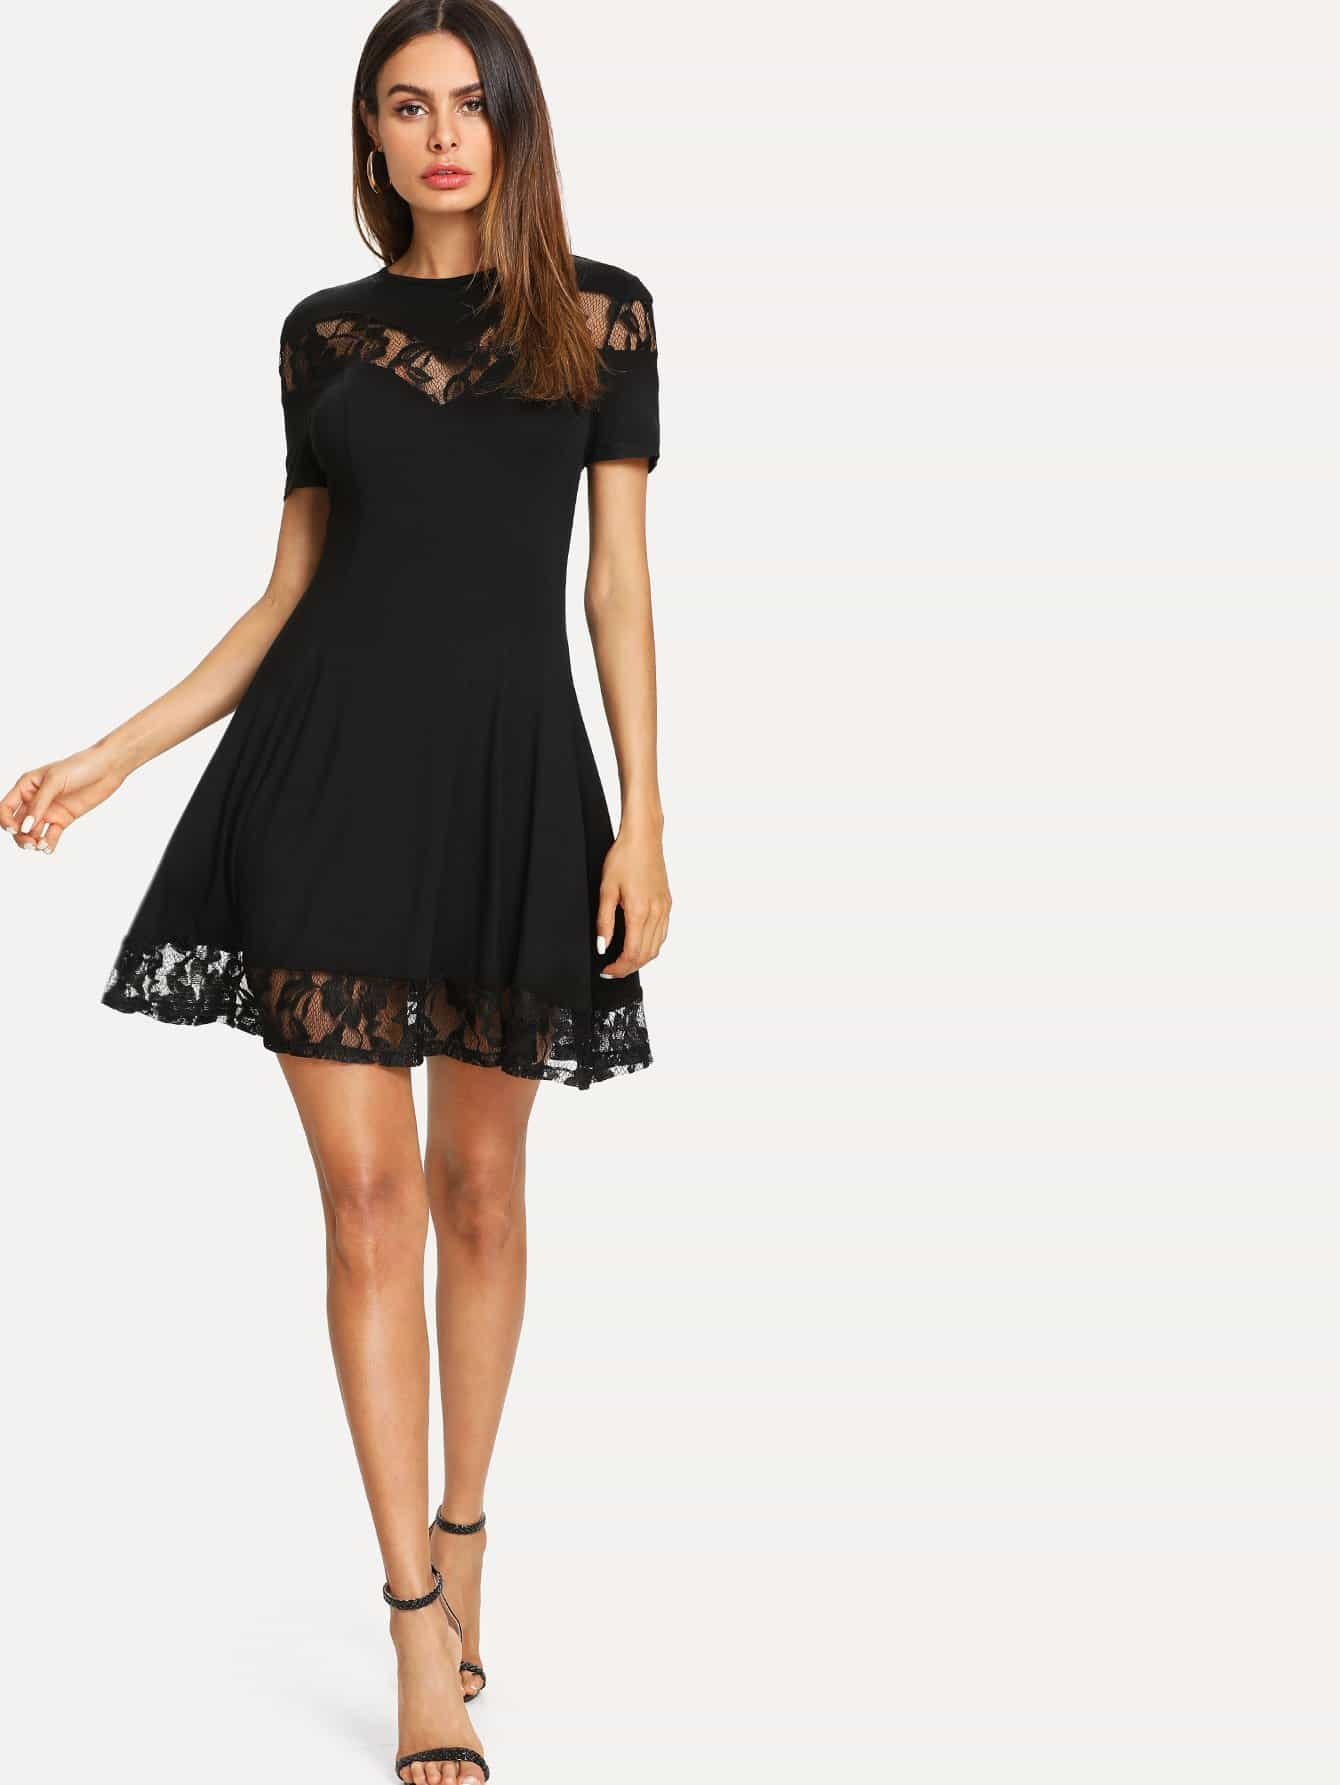 Lace Insert Fit & Flared Dress lace insert flared sleeves mini dress